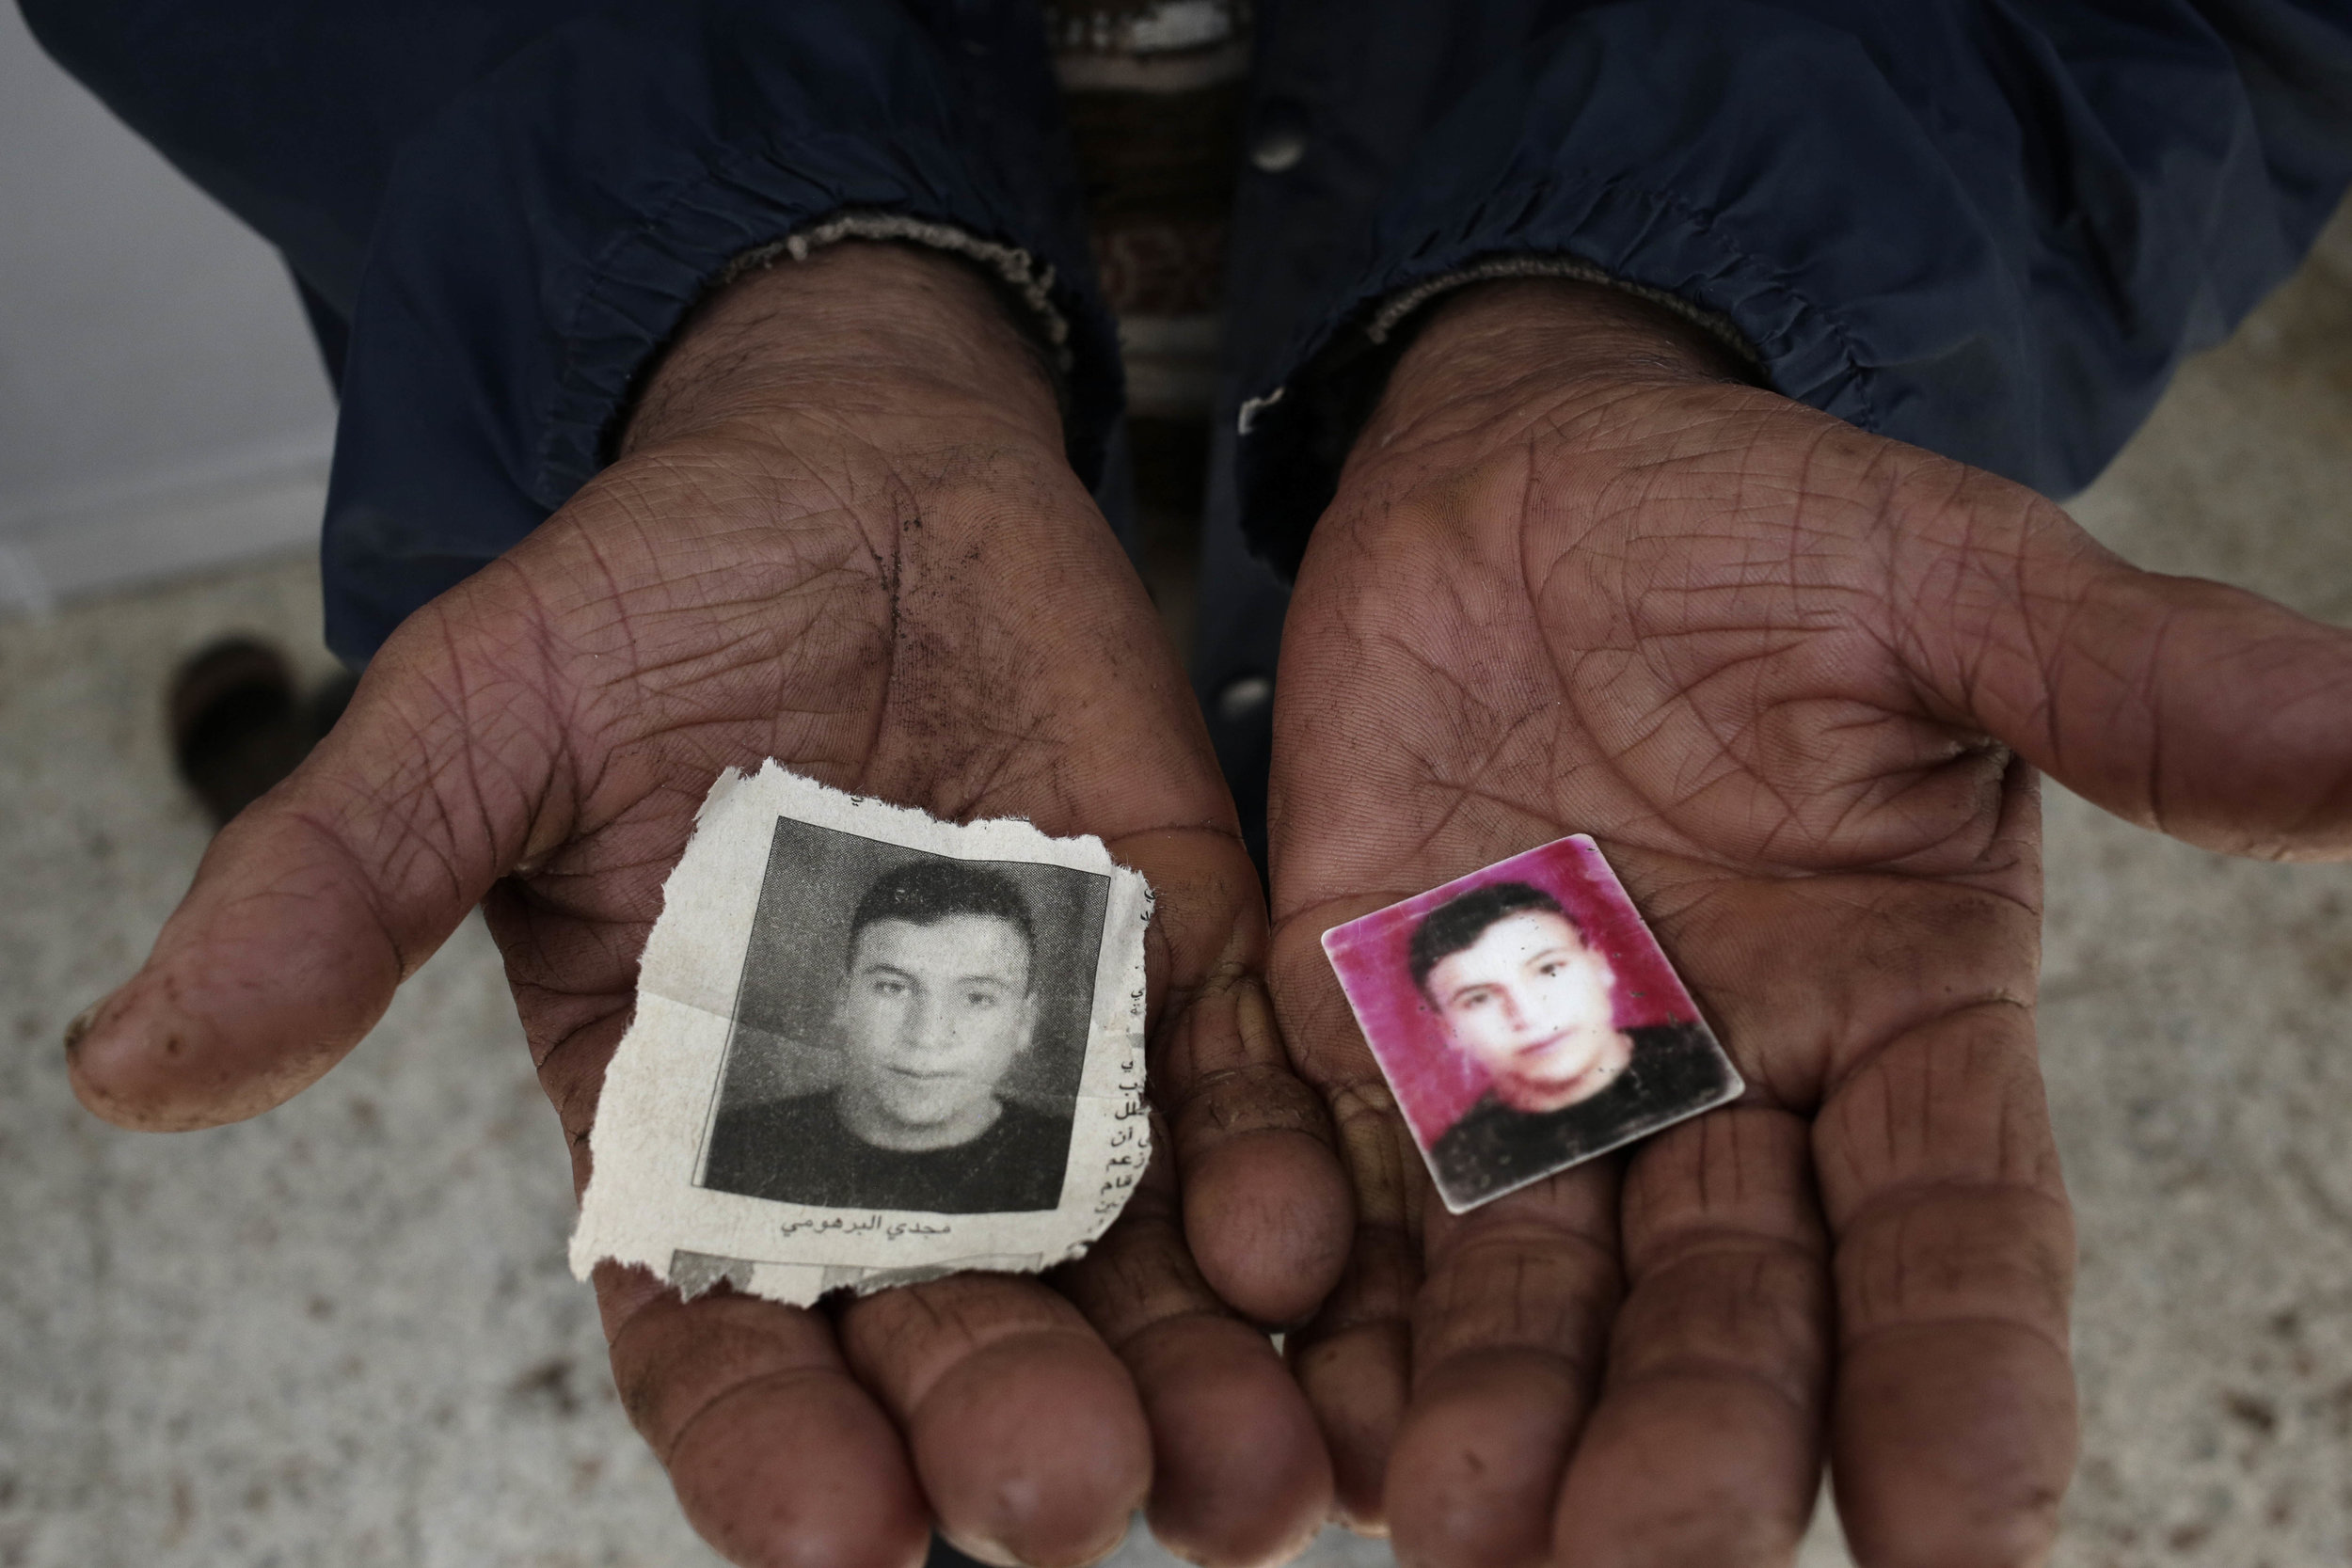 In this Thursday, April 12, 2018 photo, the father of Majdi Barhoumi, who went missing in 2011, holds photos of him, at their home in Tunisia. (AP Photo/Nariman El-Mofty)